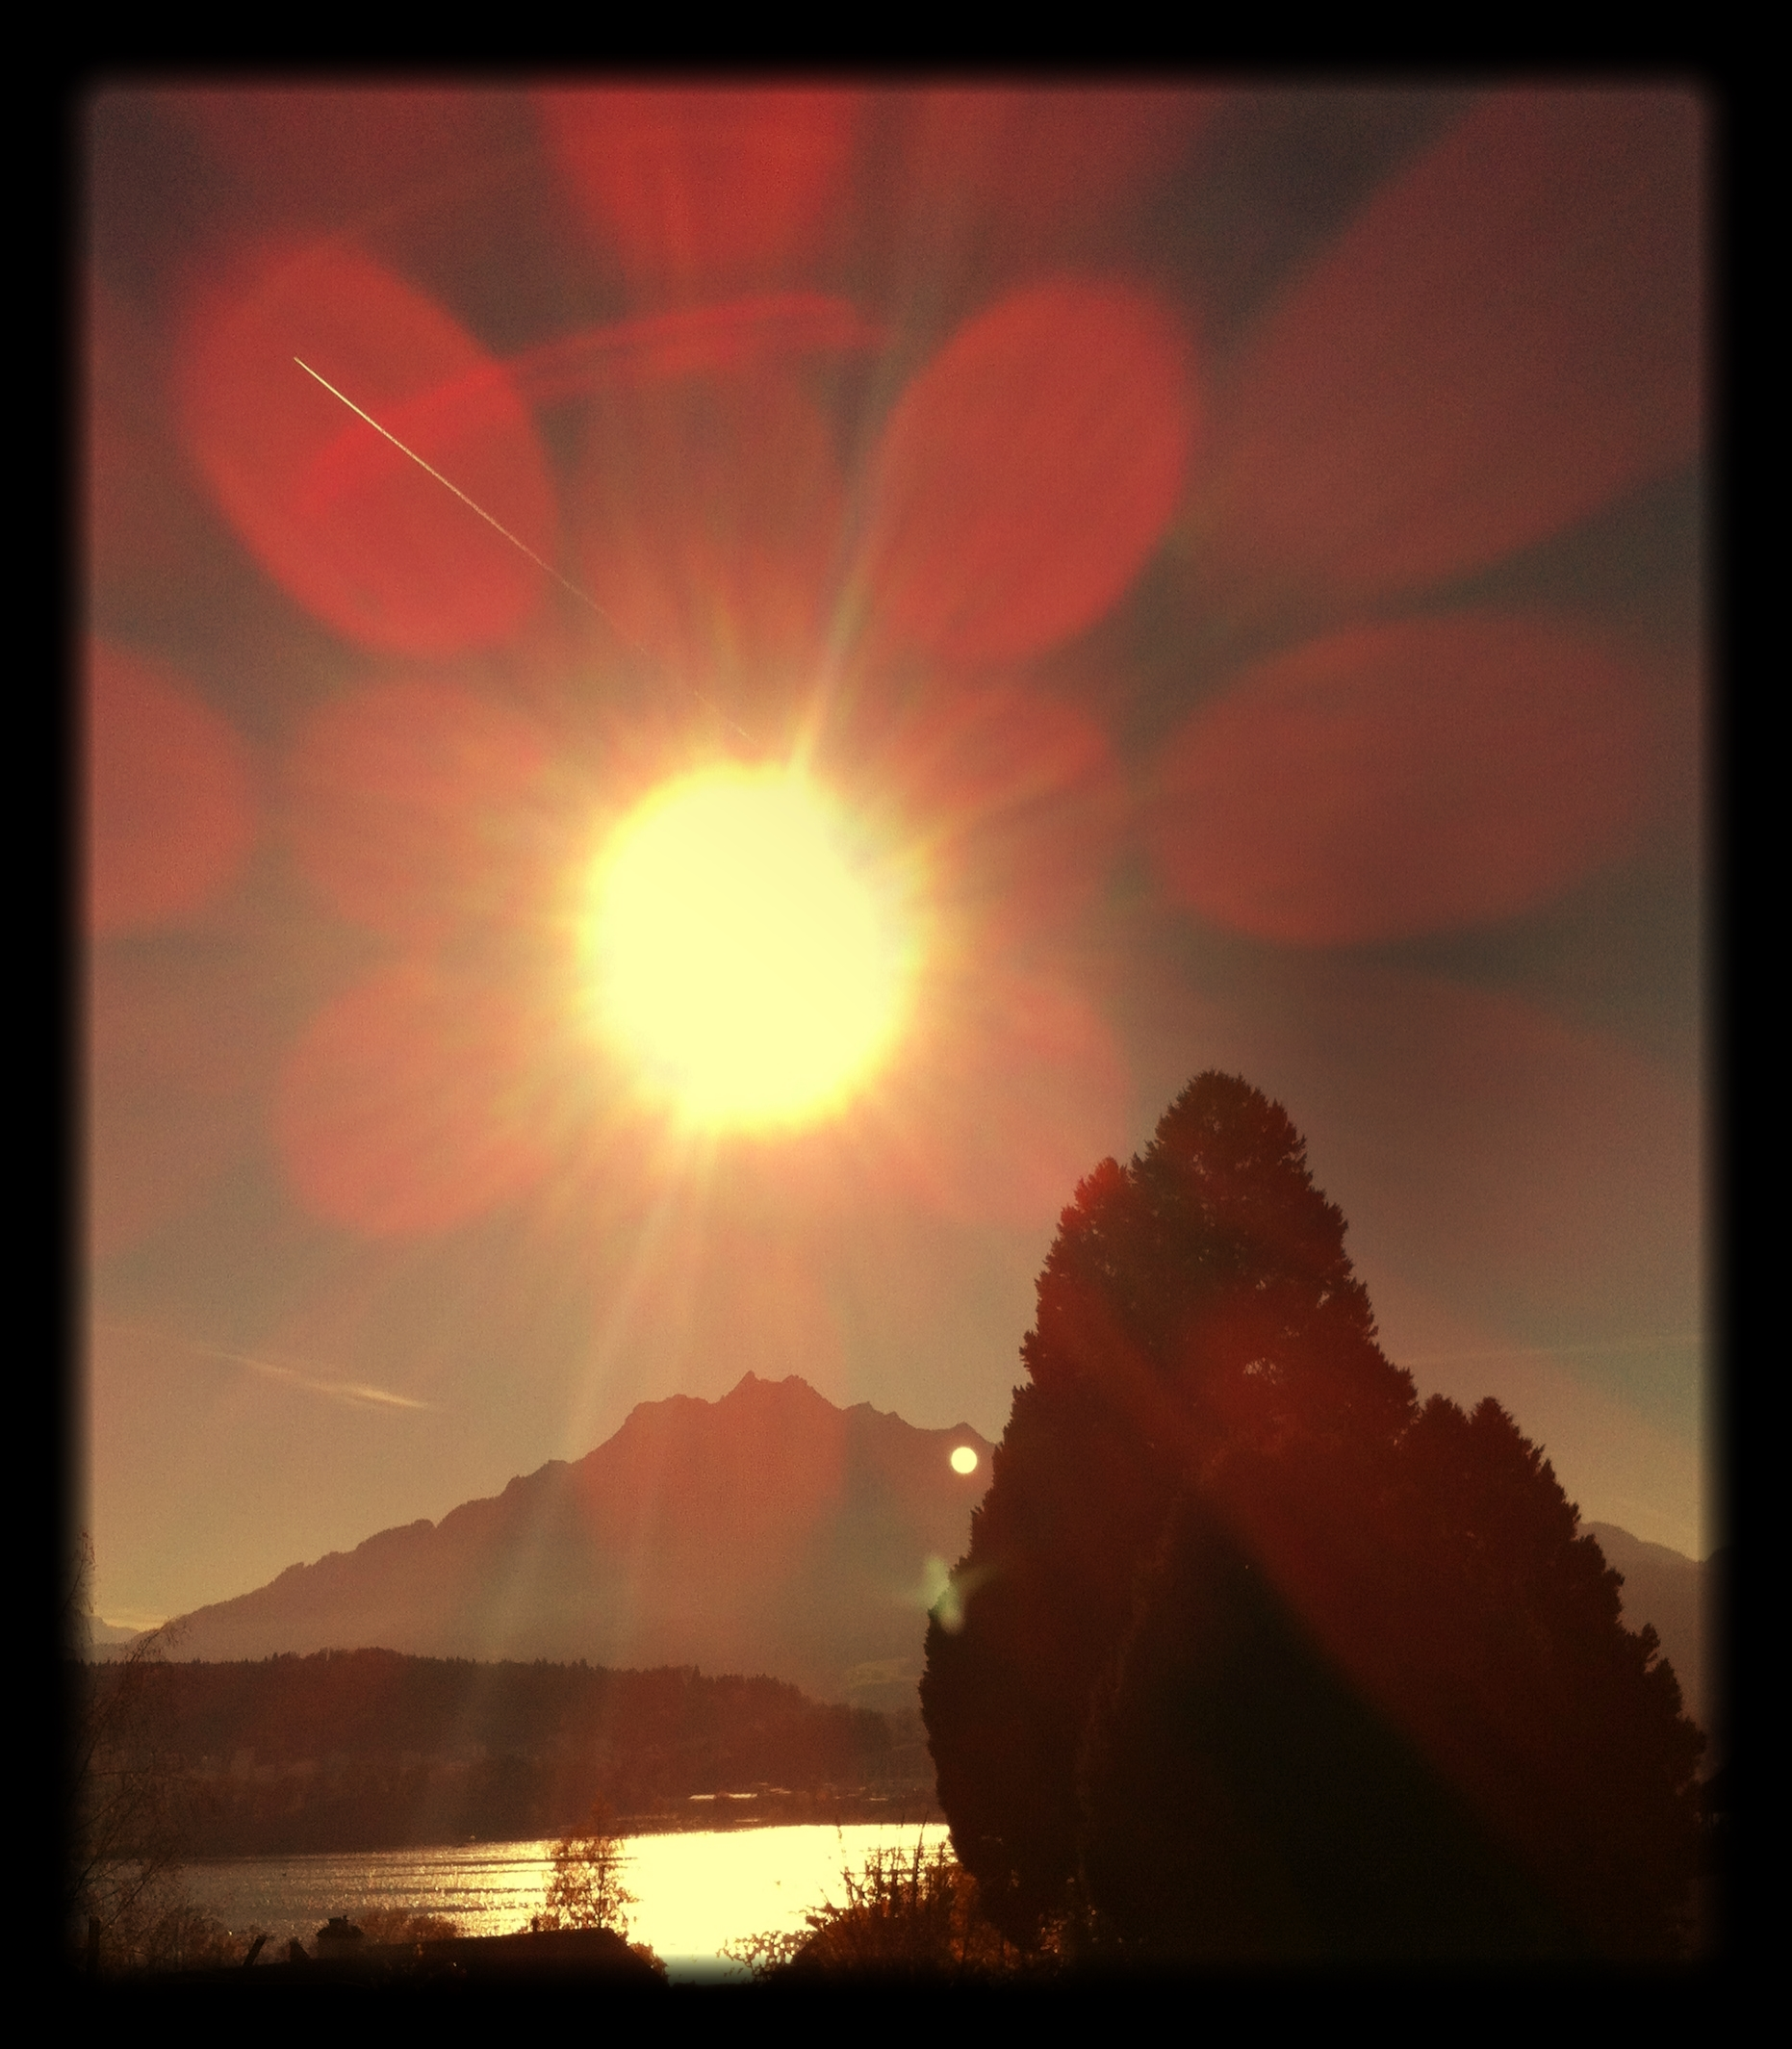 Mount_Pilatus_on_Lake_Luzern_in_sunshine